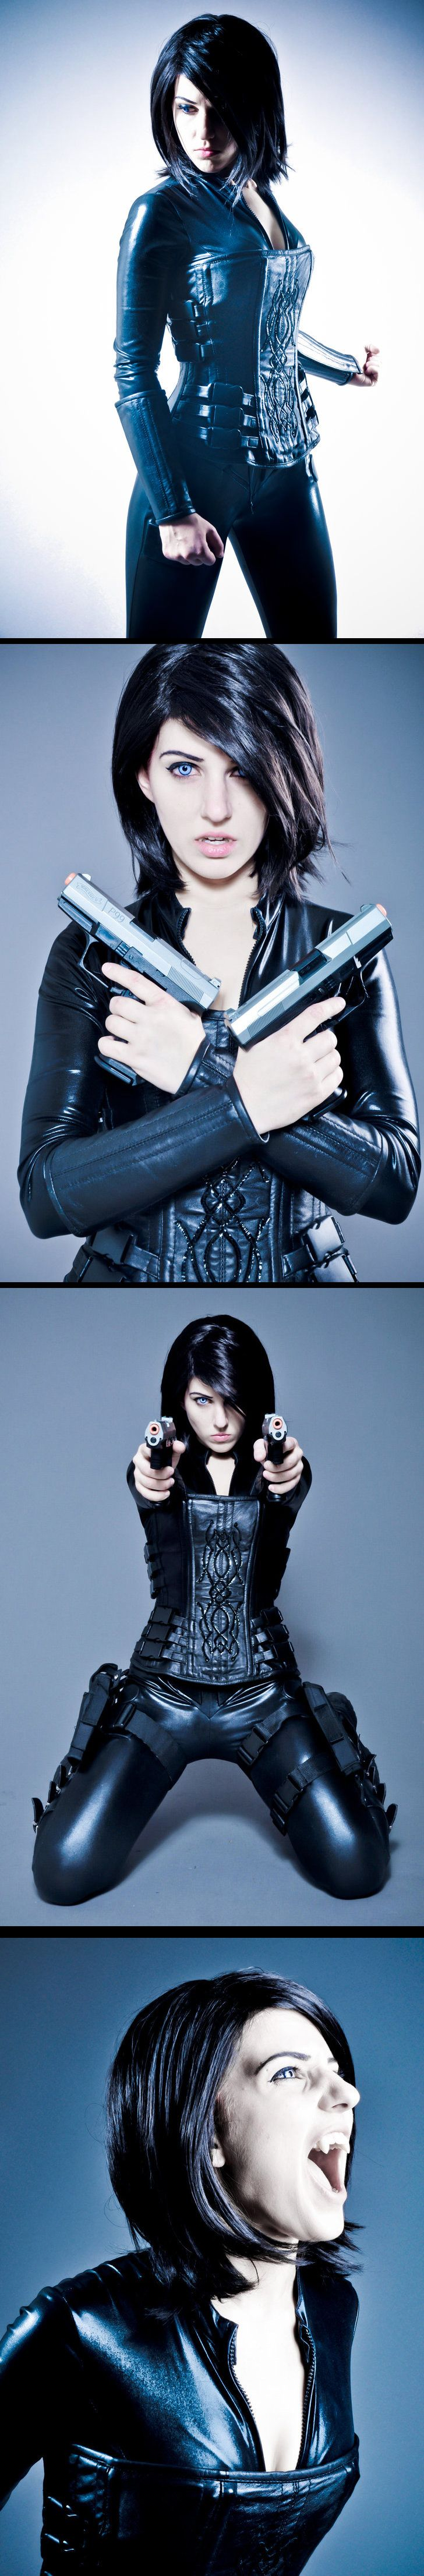 Selene #cosplay - Underworld (Click to see entire Photoshoot.)